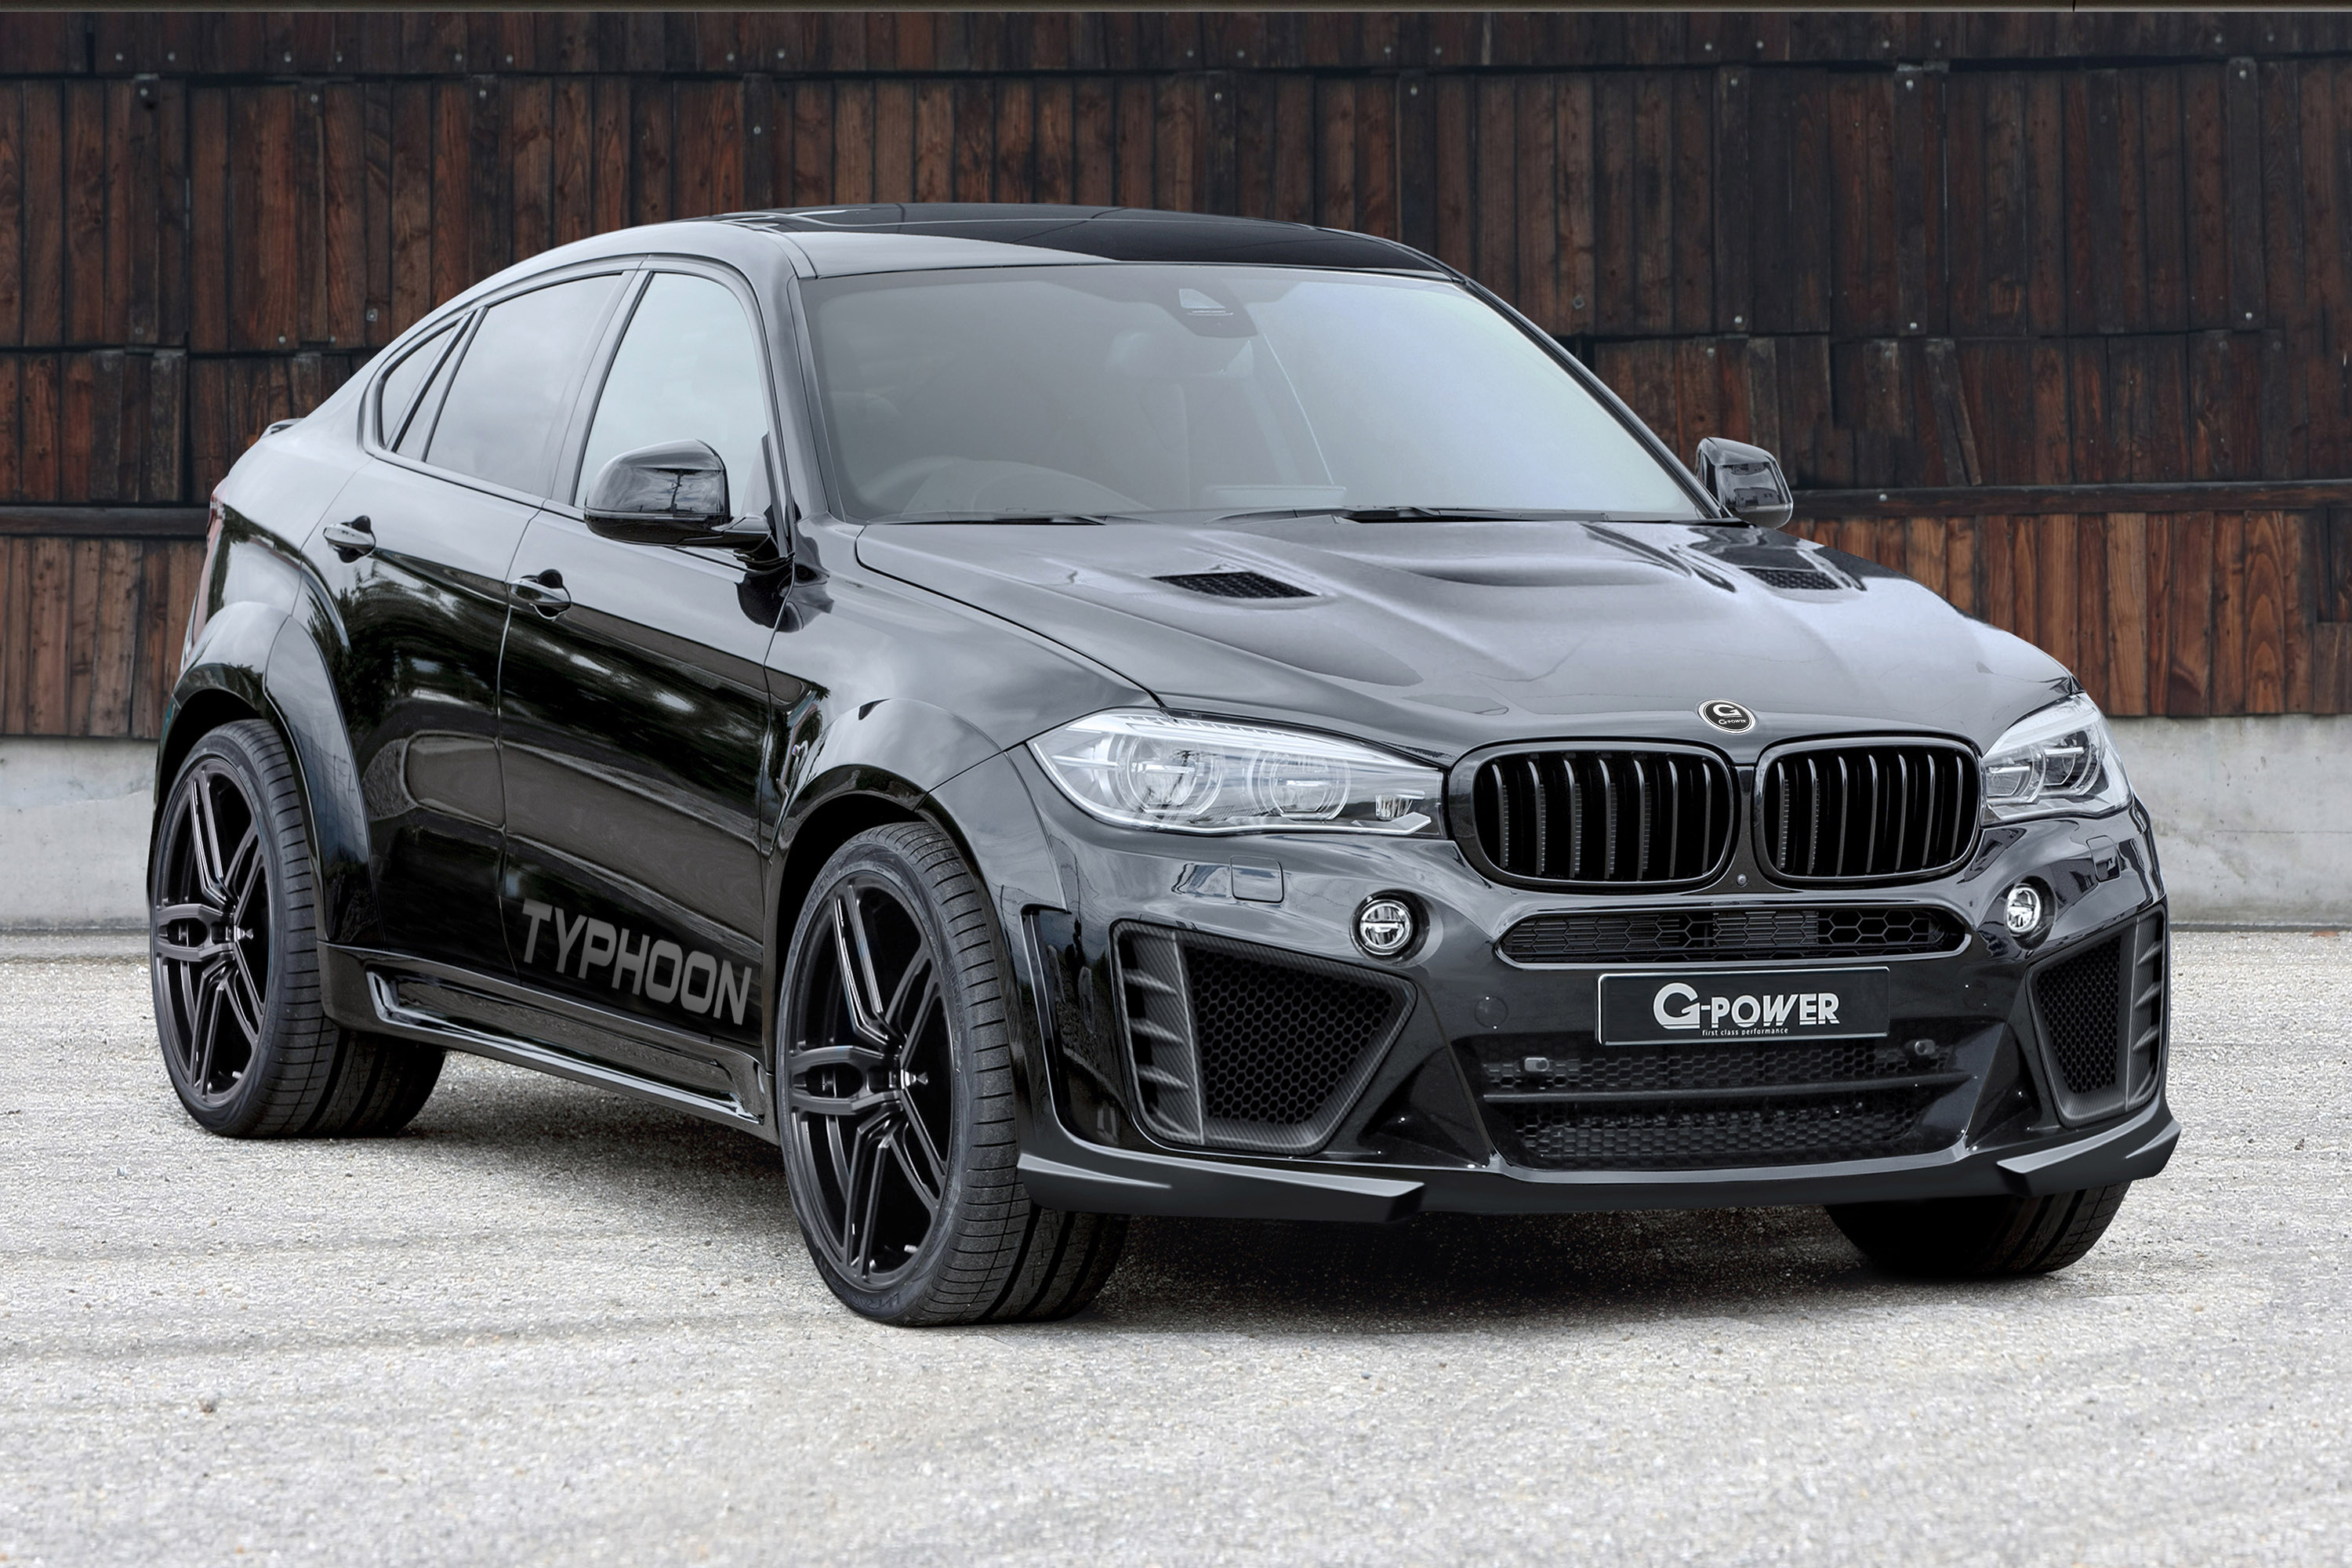 G-Power Introduces BMW X6 M Typhoon